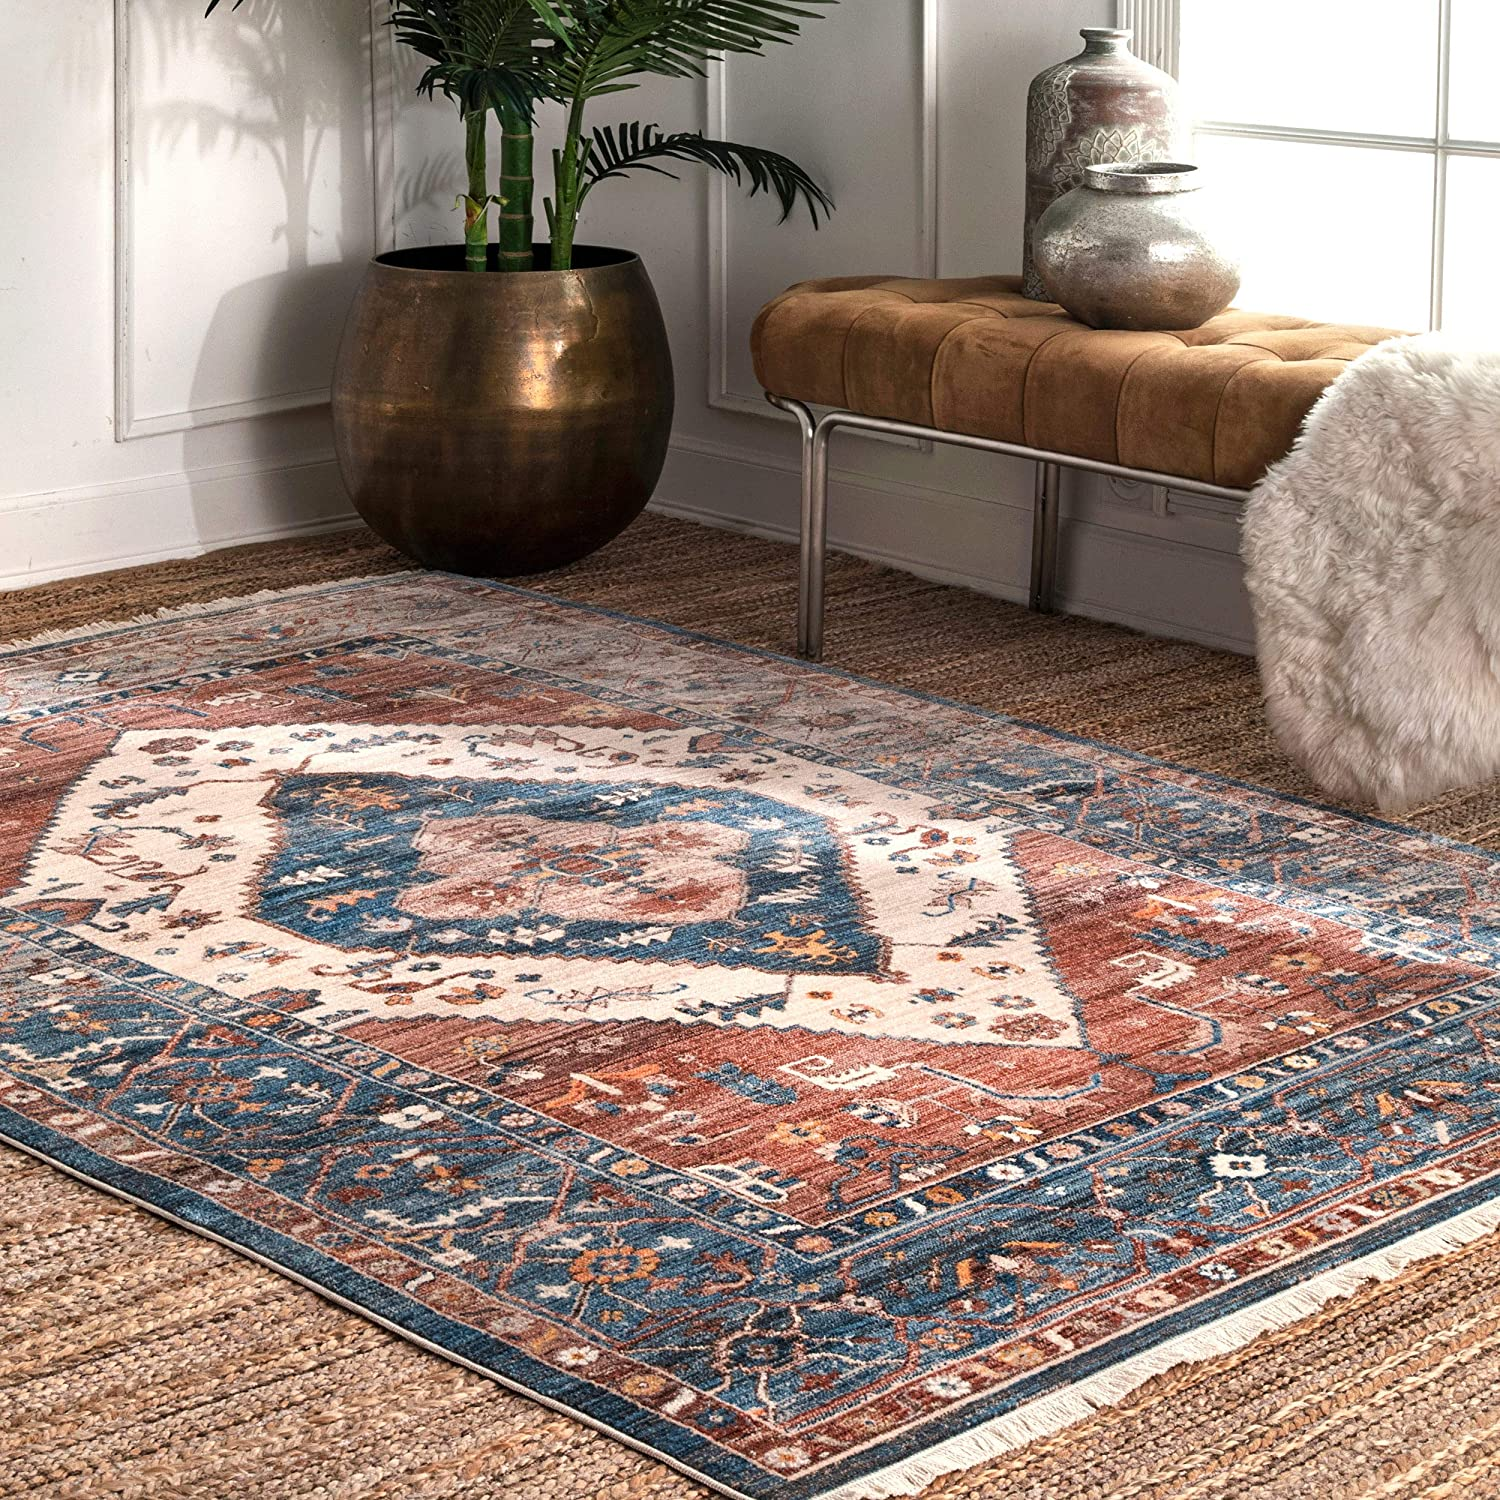 Amazon Com Nuloom Mabel Tribal Area Rug 5 X 7 9 Rust Furniture Decor